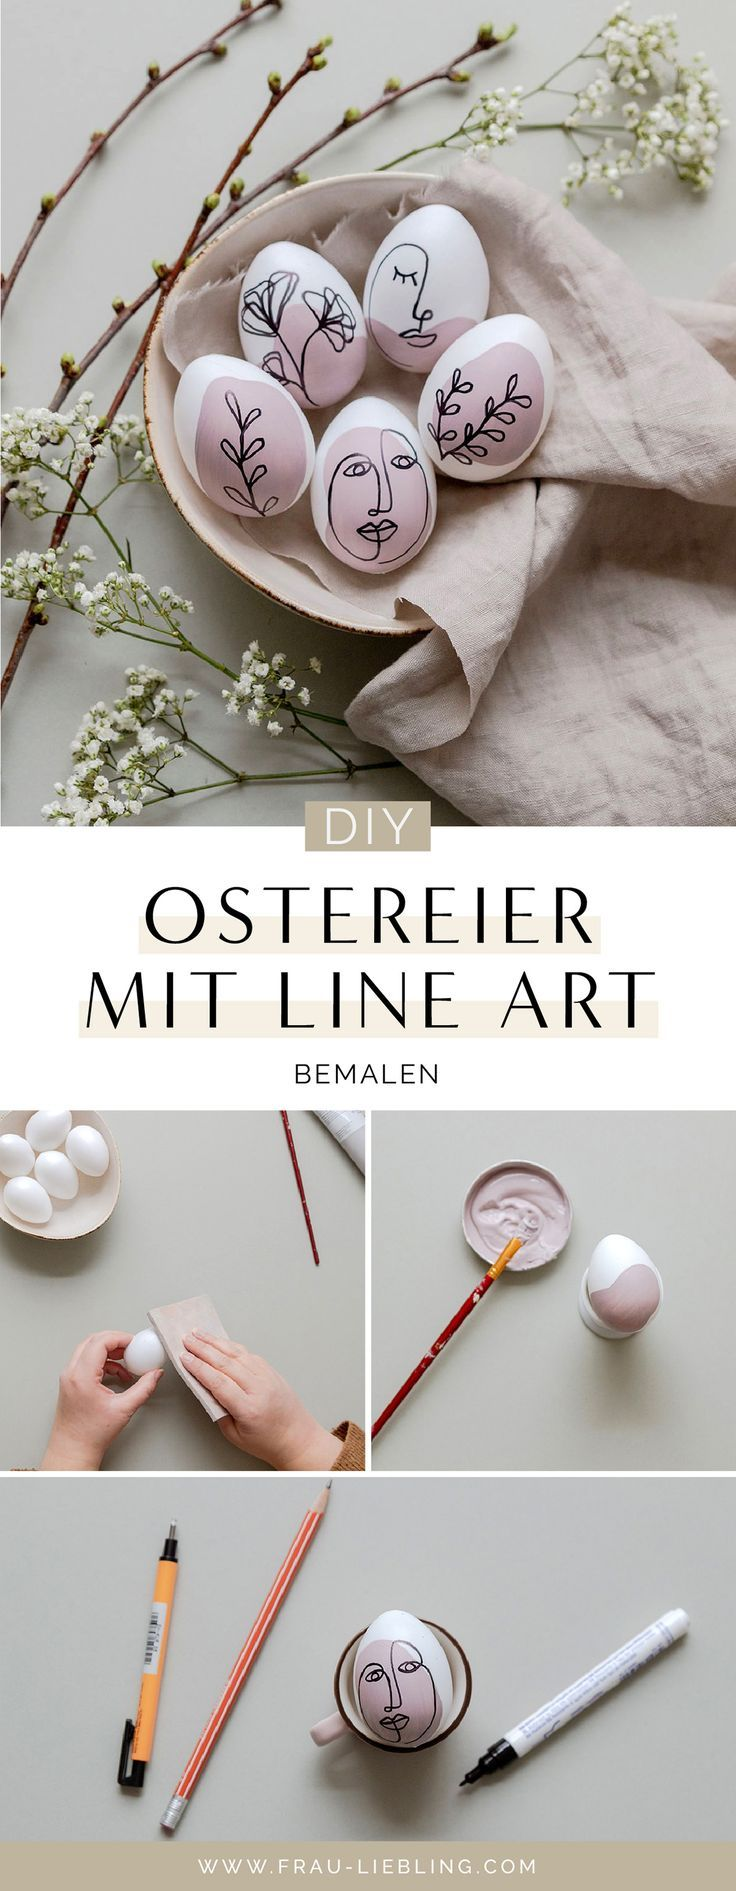 Photo of Ostereier bemalen mit Line Art und Oneline Illustrationen #DIY